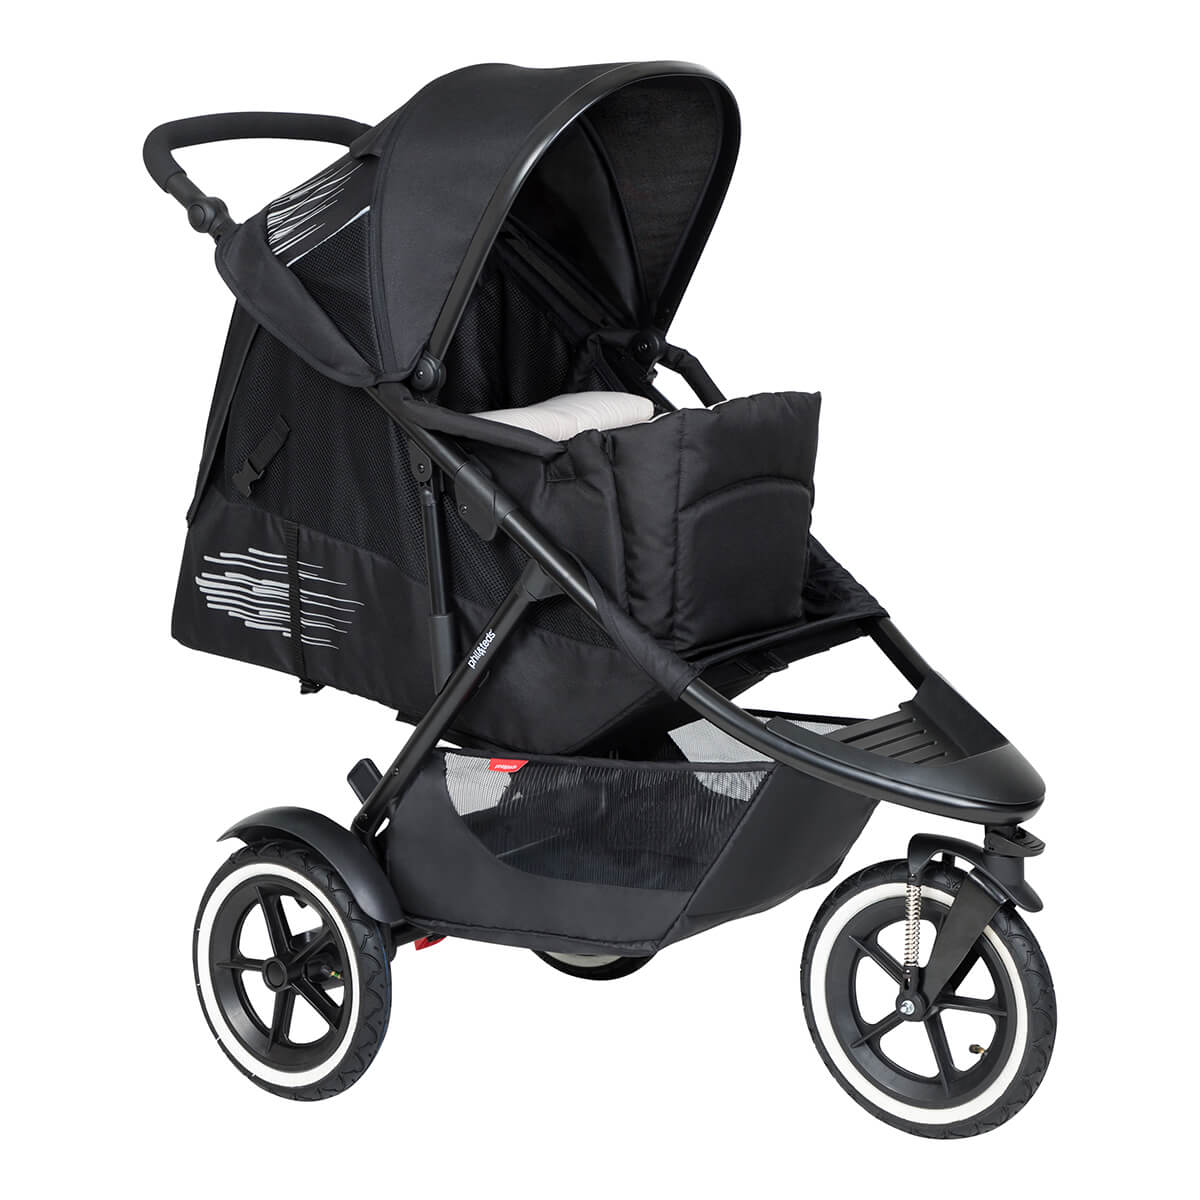 https://cdn.accentuate.io/4546157248617/19119322529897/philteds-sport-buggy-with-cocoon-full-recline-v1626484906902.jpg?1200x1200